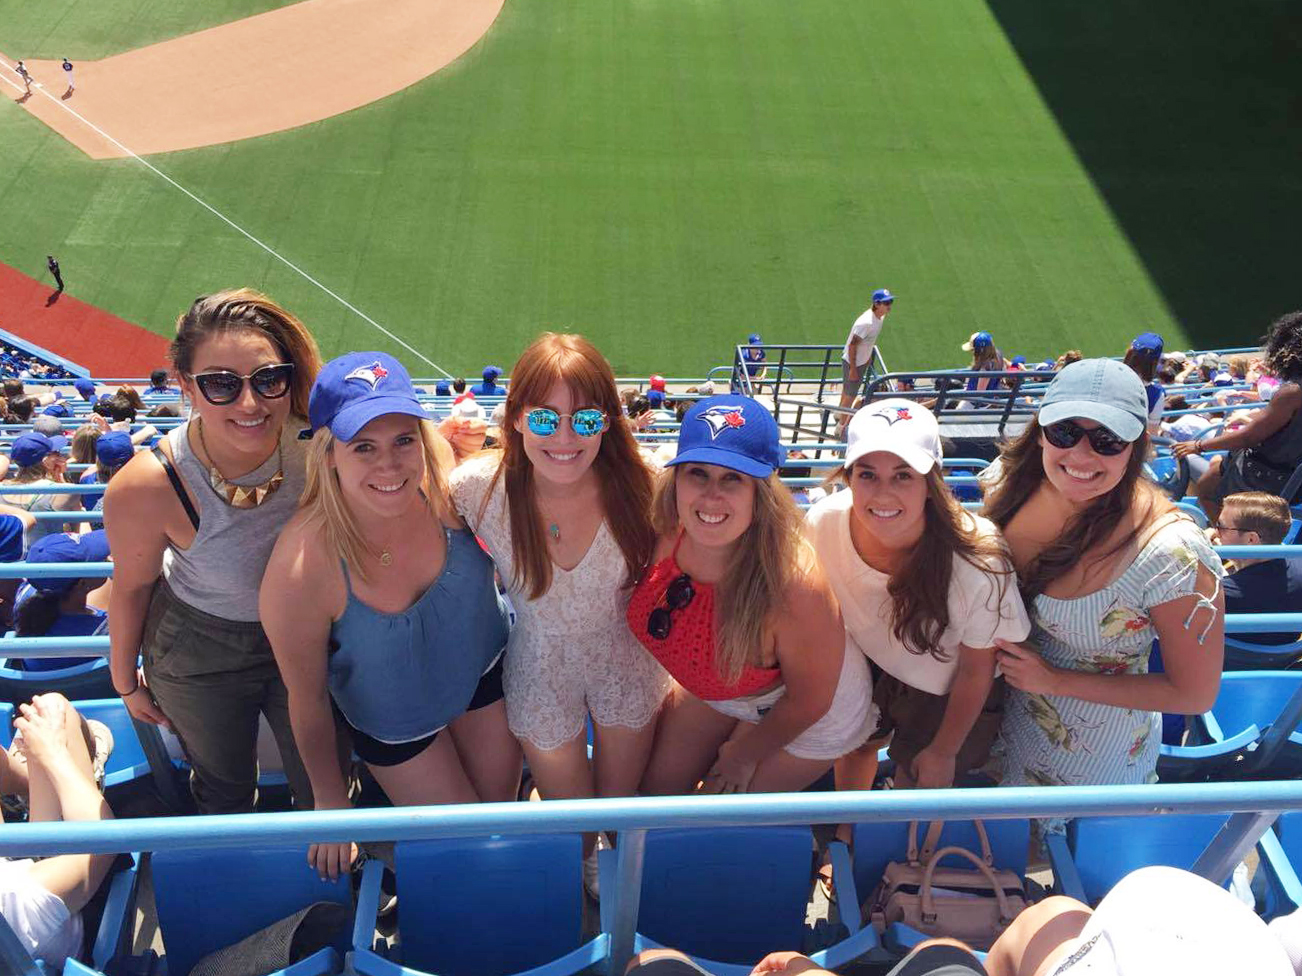 At a Blue Jays game.